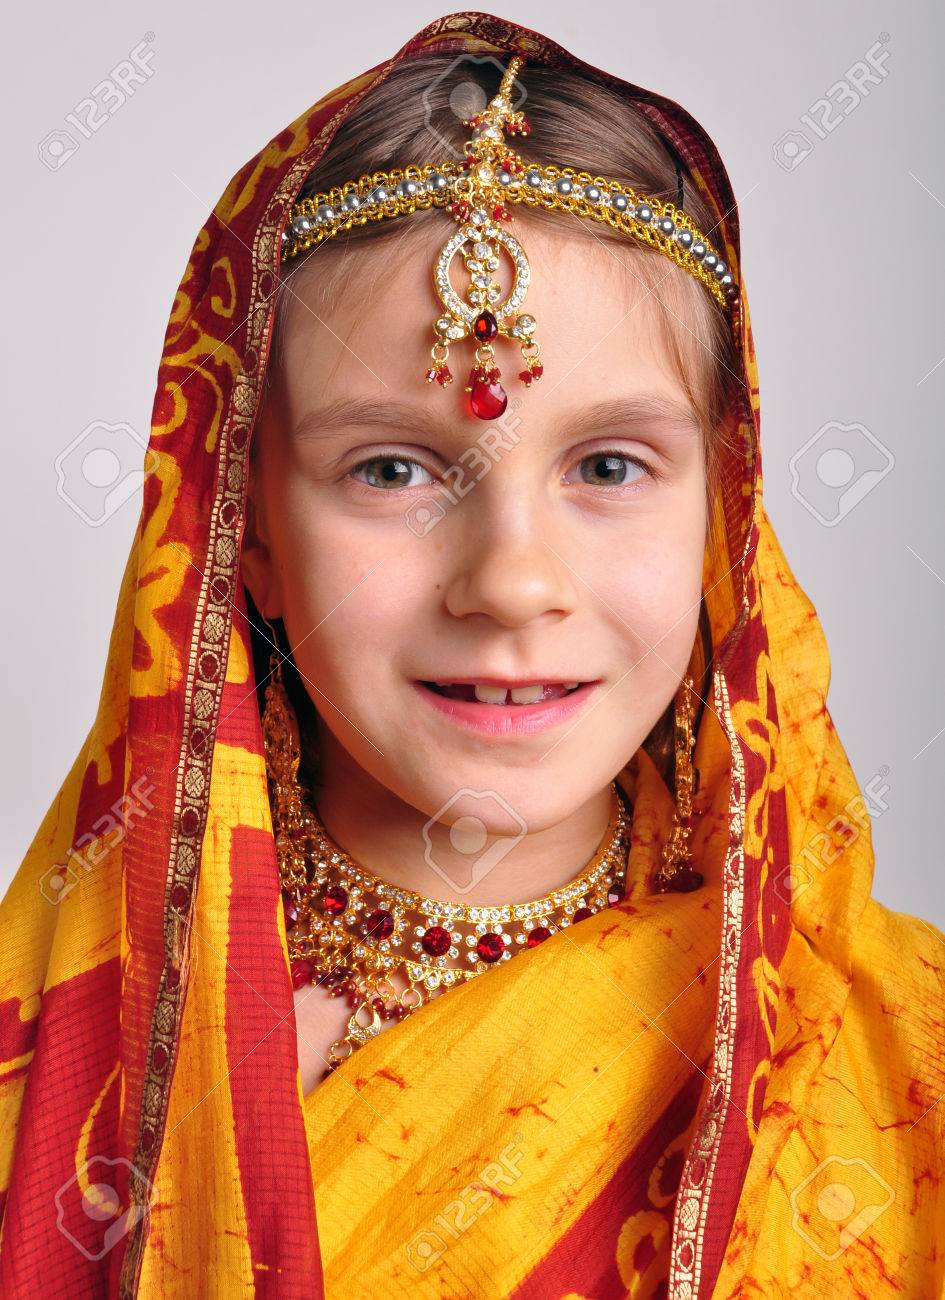 ef6986276c close-up studio portrait of little girl in traditional Indian clothing sari  and jeweleries Stock